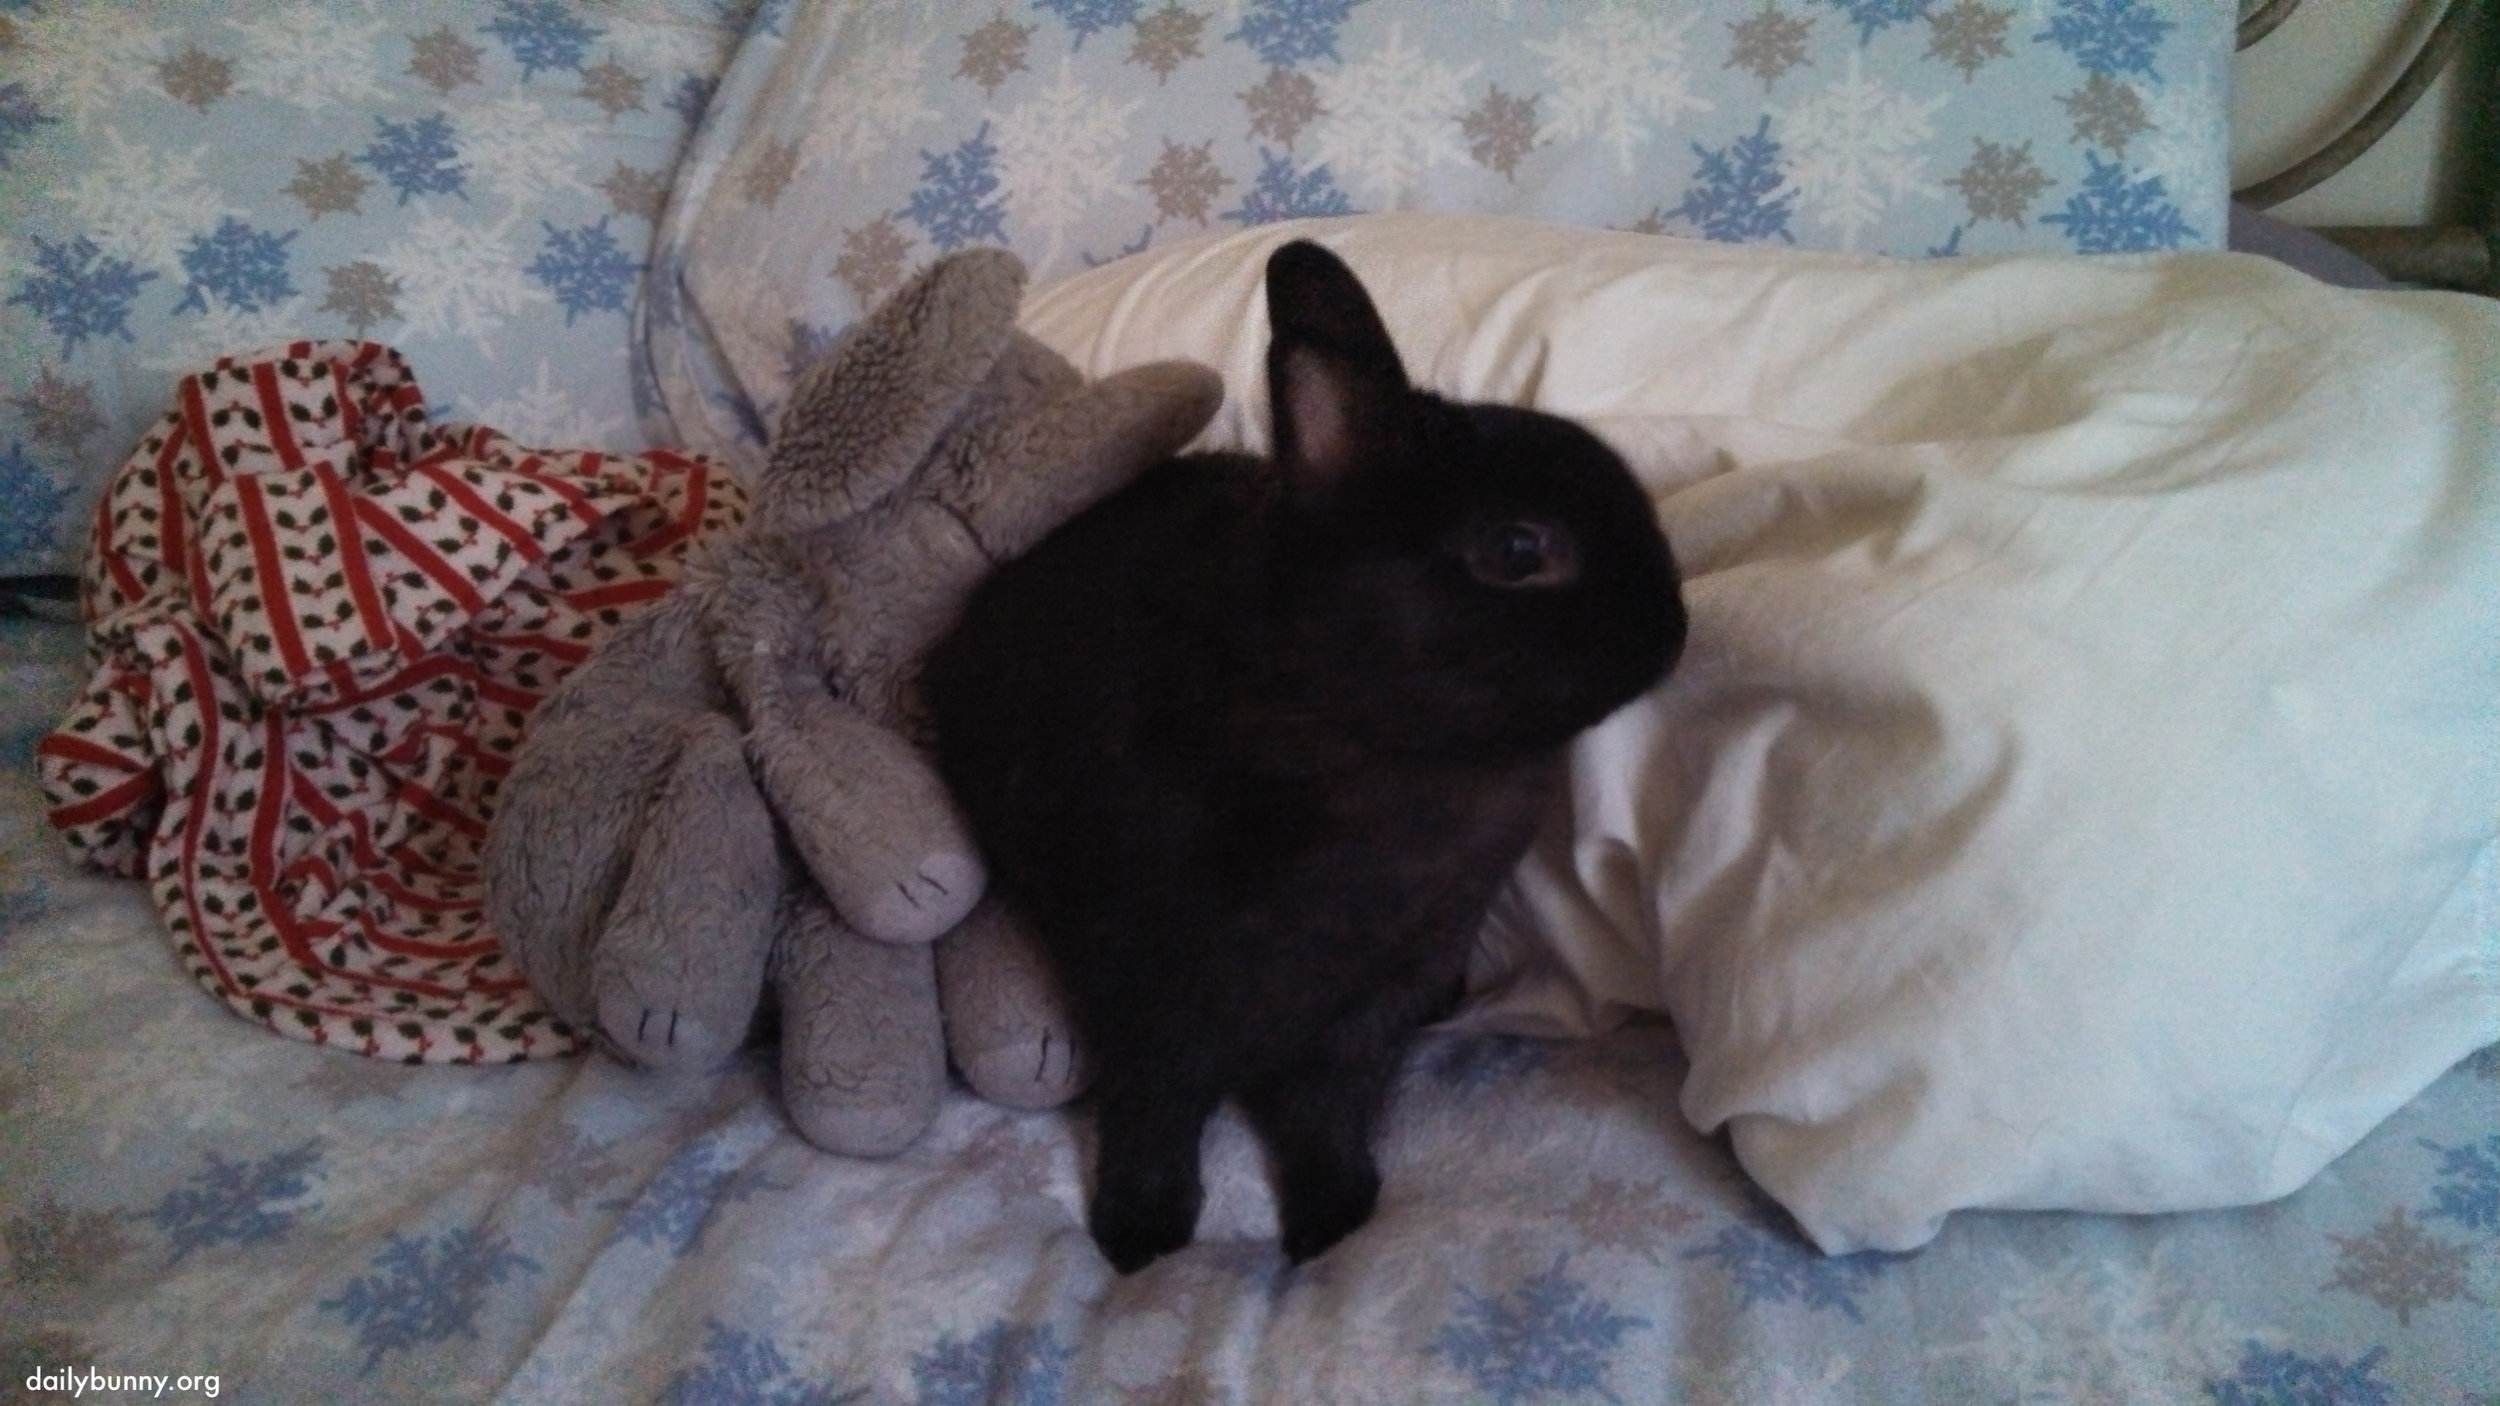 Bunny's Elephant Friend Wants to Keep Cuddling